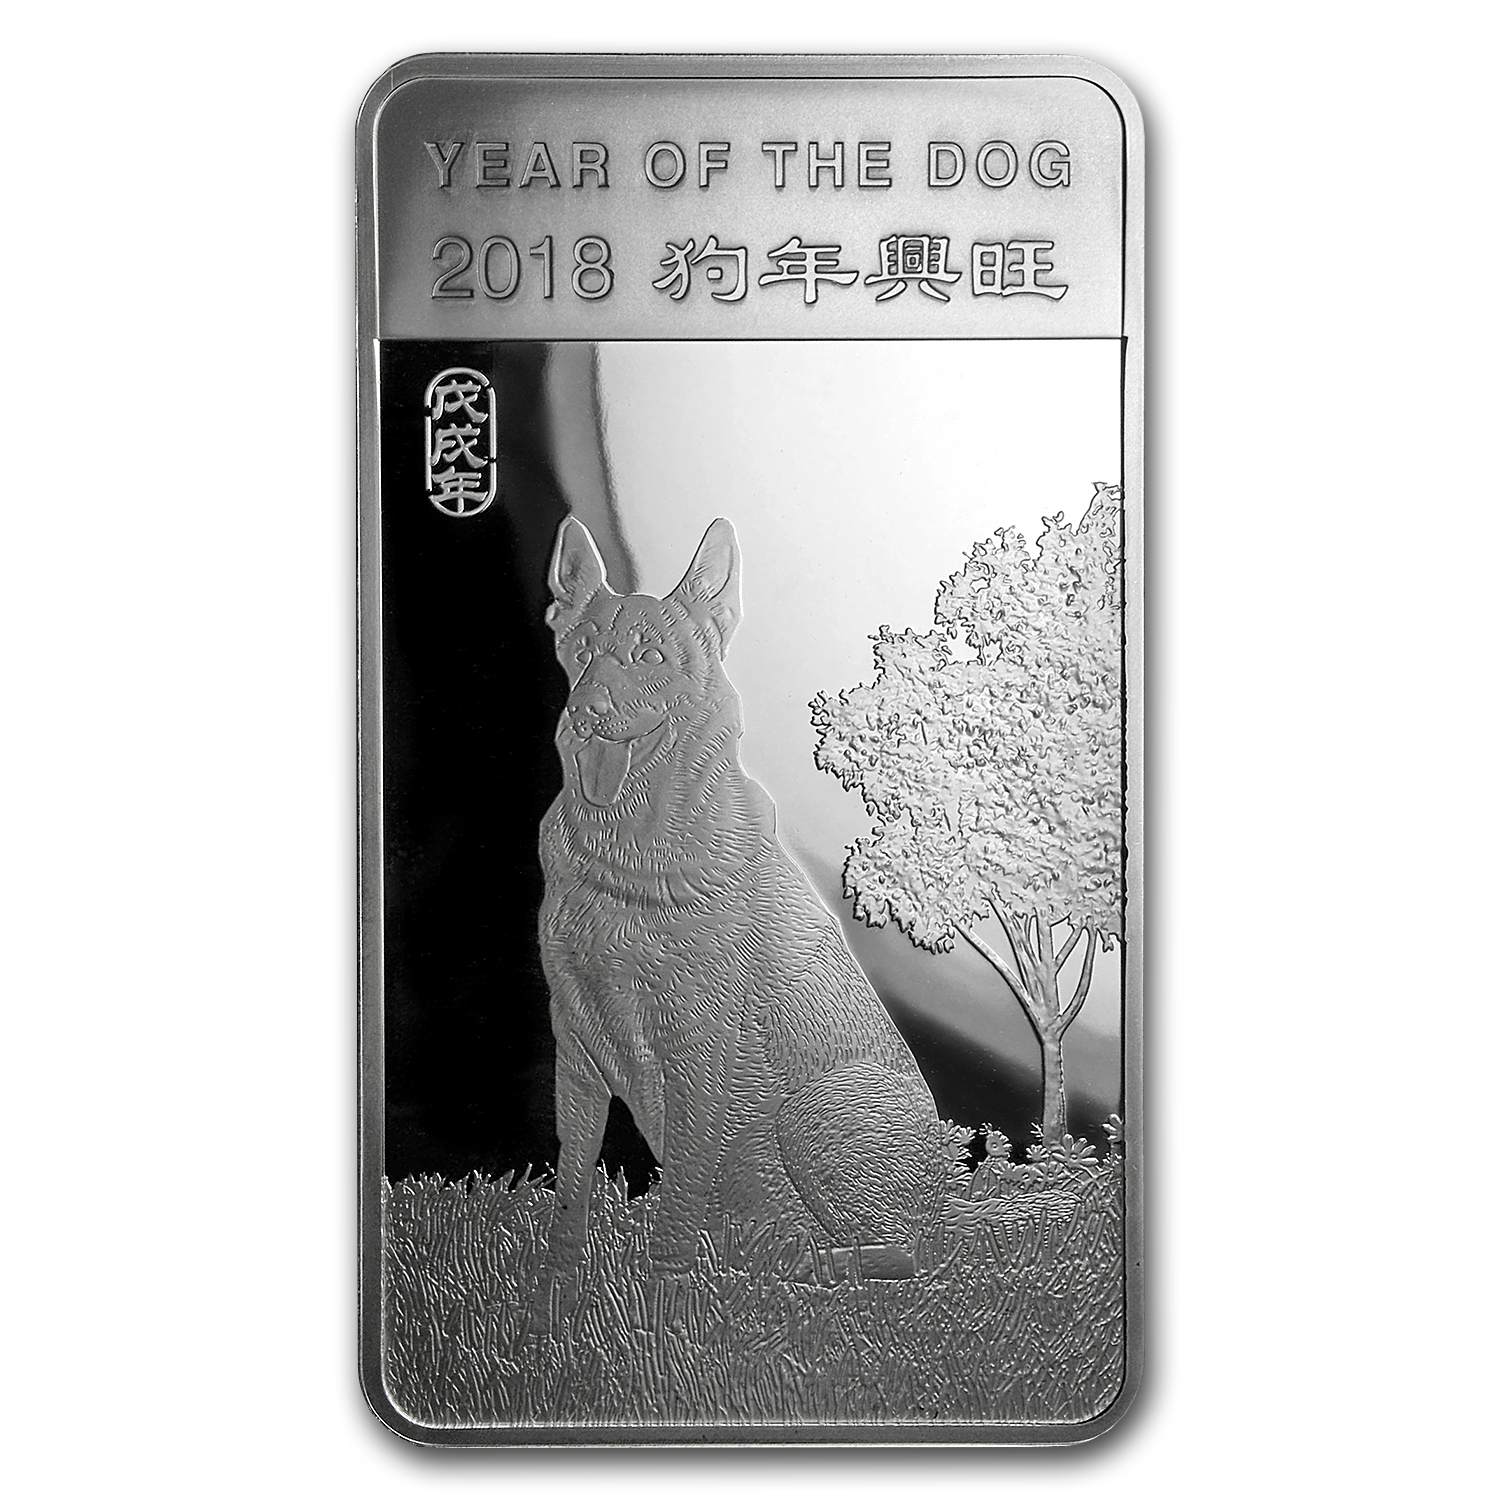 10 oz Silver Bar - APMEX (2018 Year of the Dog)